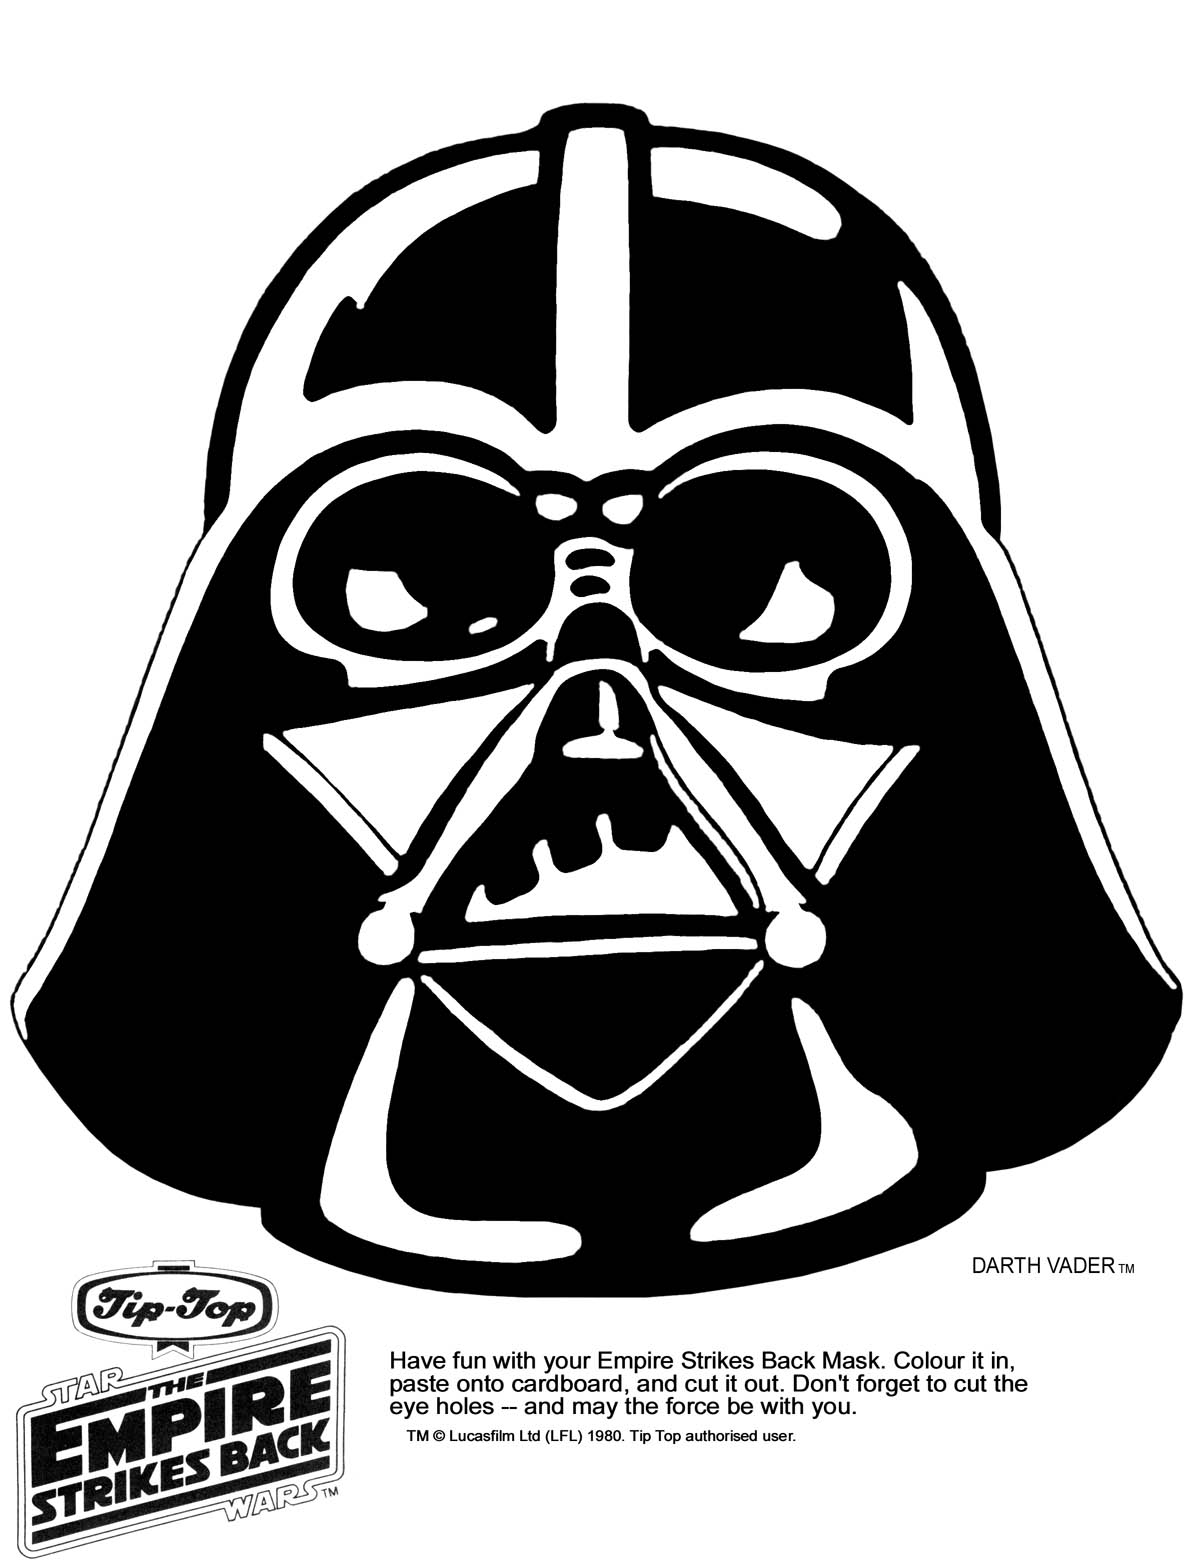 K 39 s Star Base Star Wars Printable Masks Kaplan 39 s Page